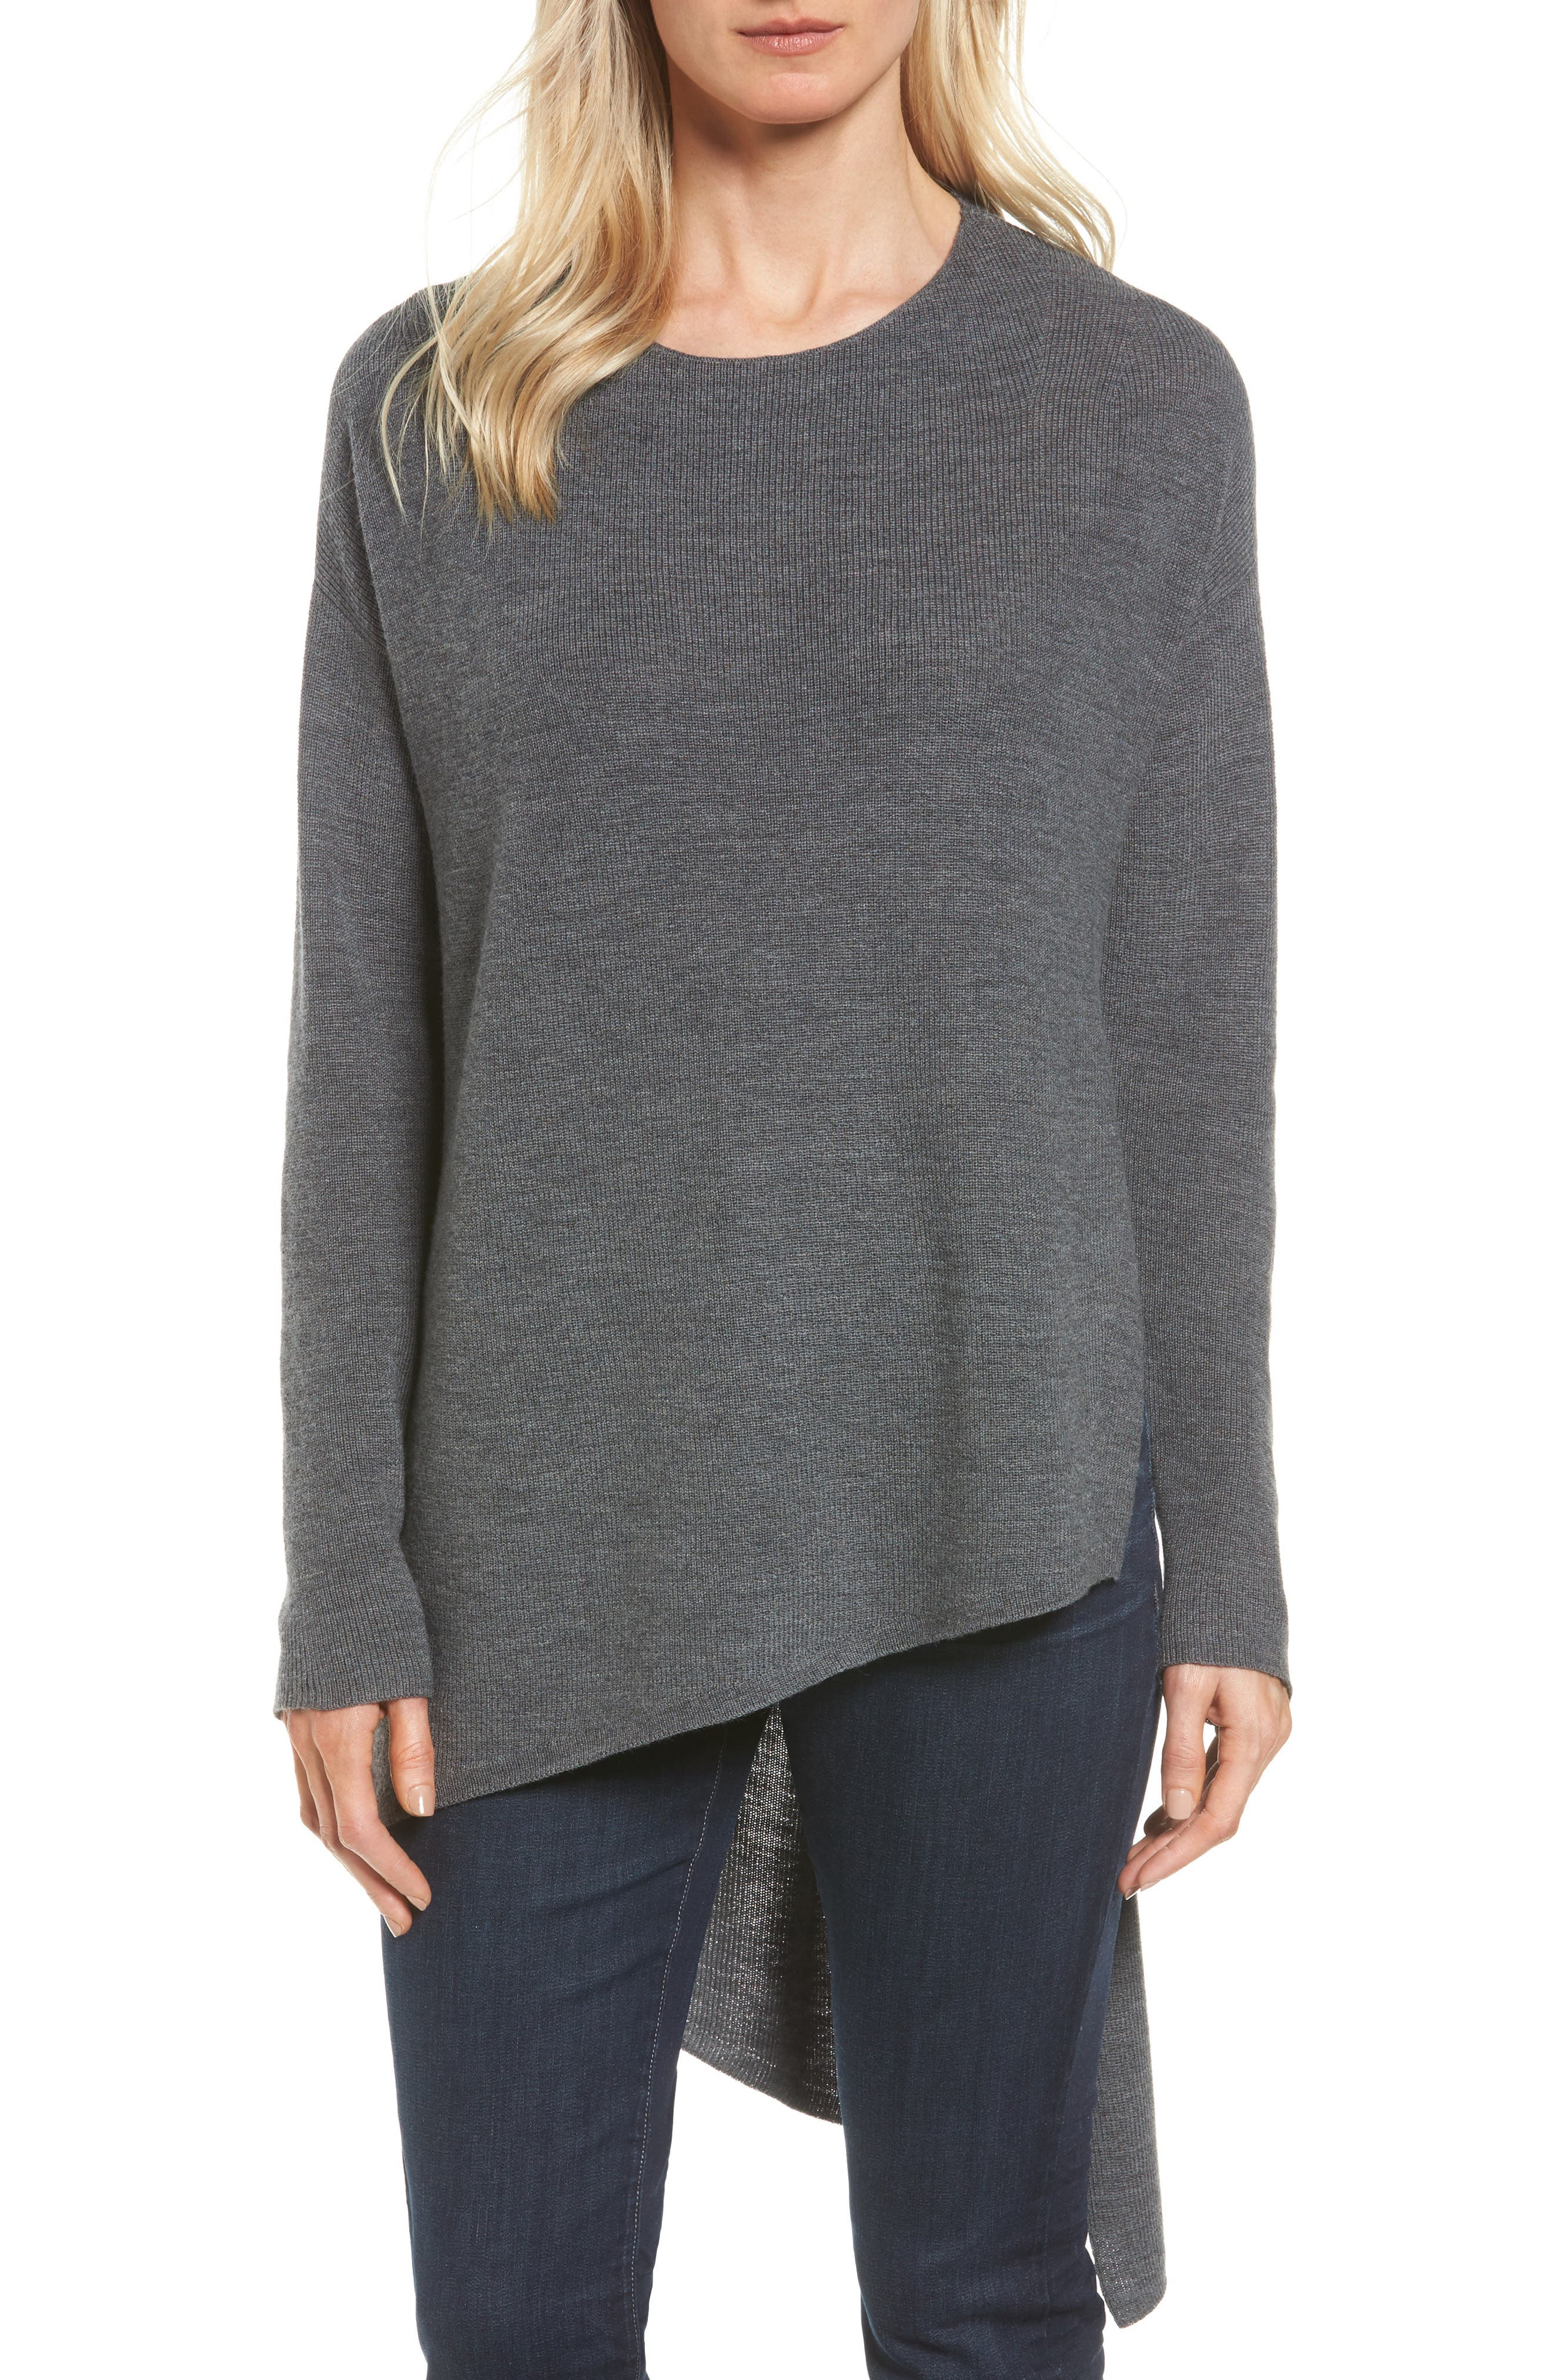 Wool Sweaters & Sweatshirts, Cowl Necks, Cable Knits | Nordstrom ...